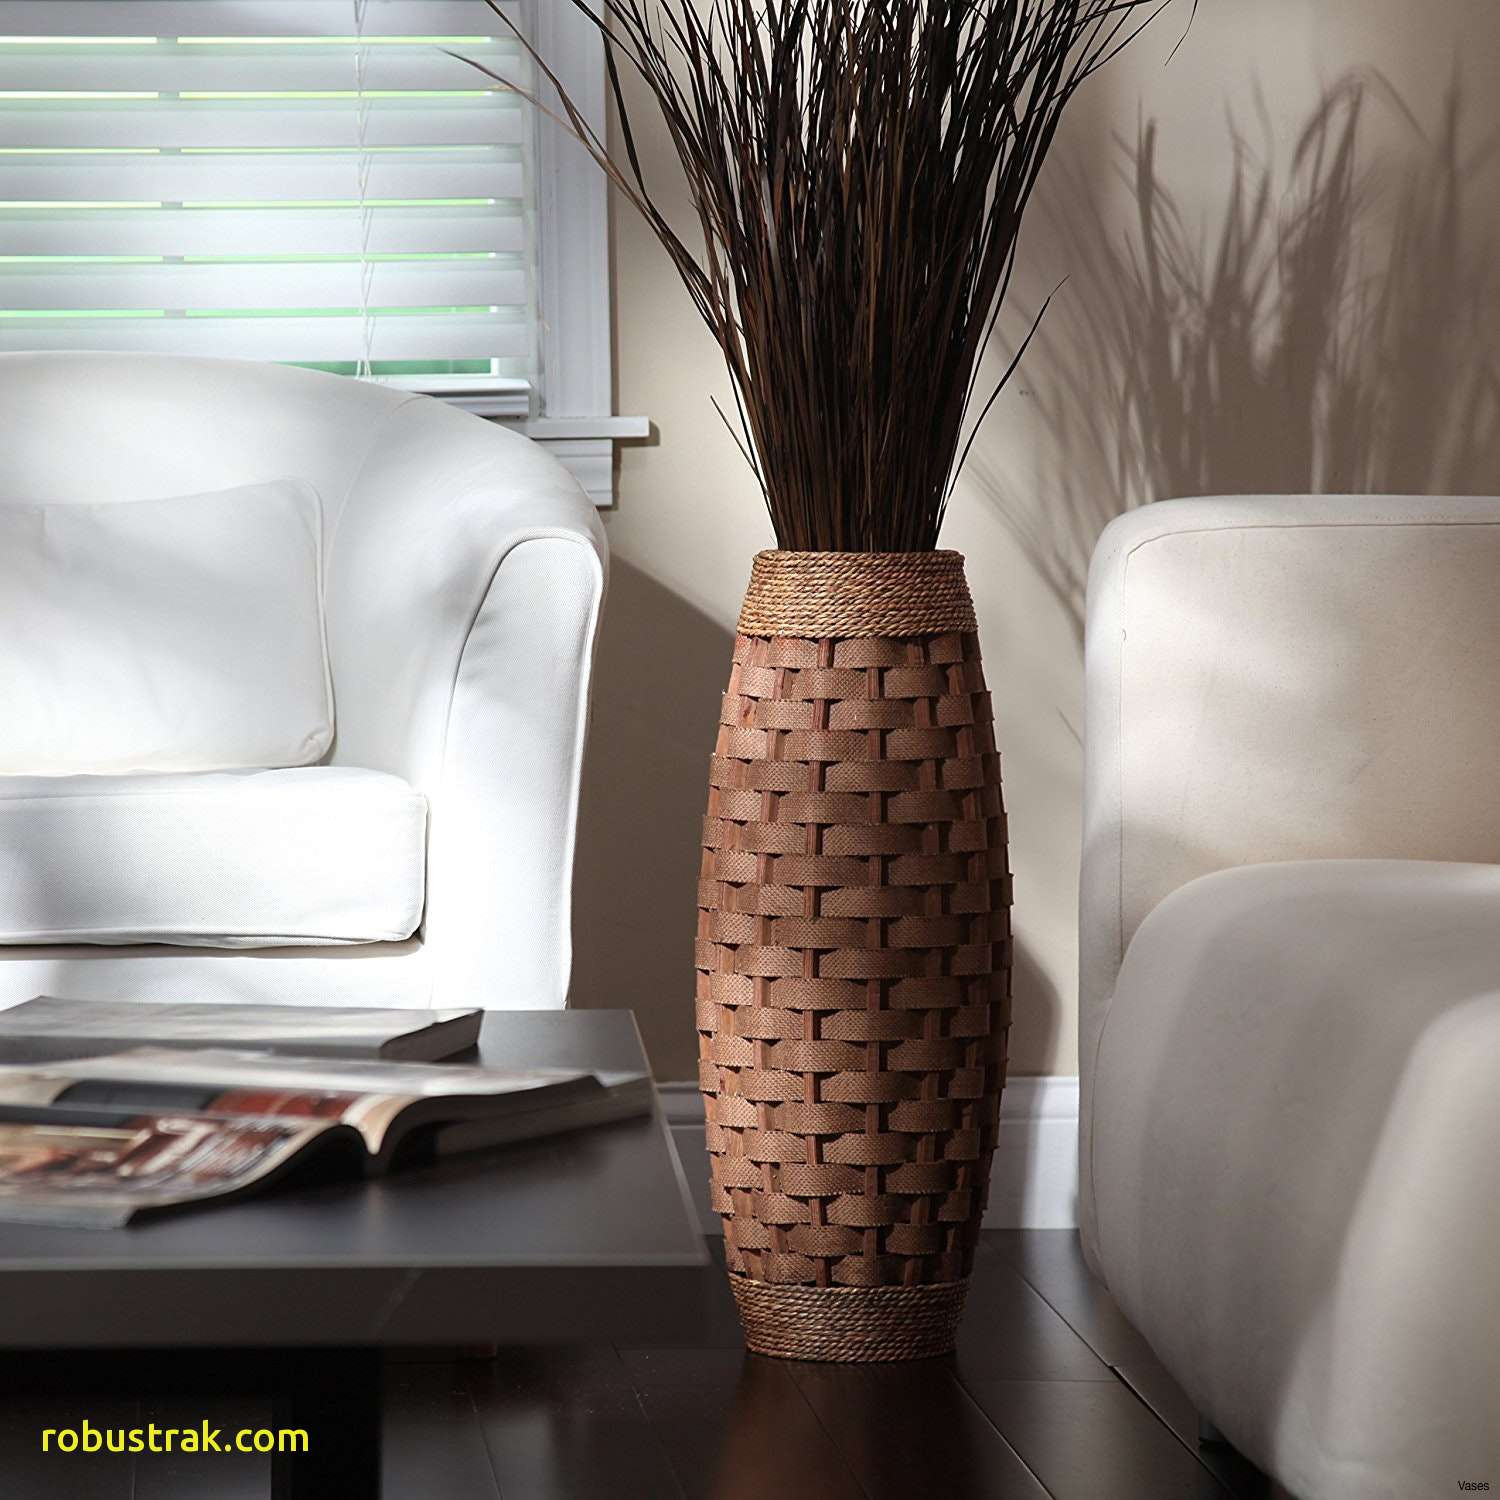 what is a hurricane vase of decorative vases for living room inspirational 24 floor vases ideas pertaining to decorative vases for living room inspirational 24 floor vases ideas for stylish home decor coverh d cori 0d tall